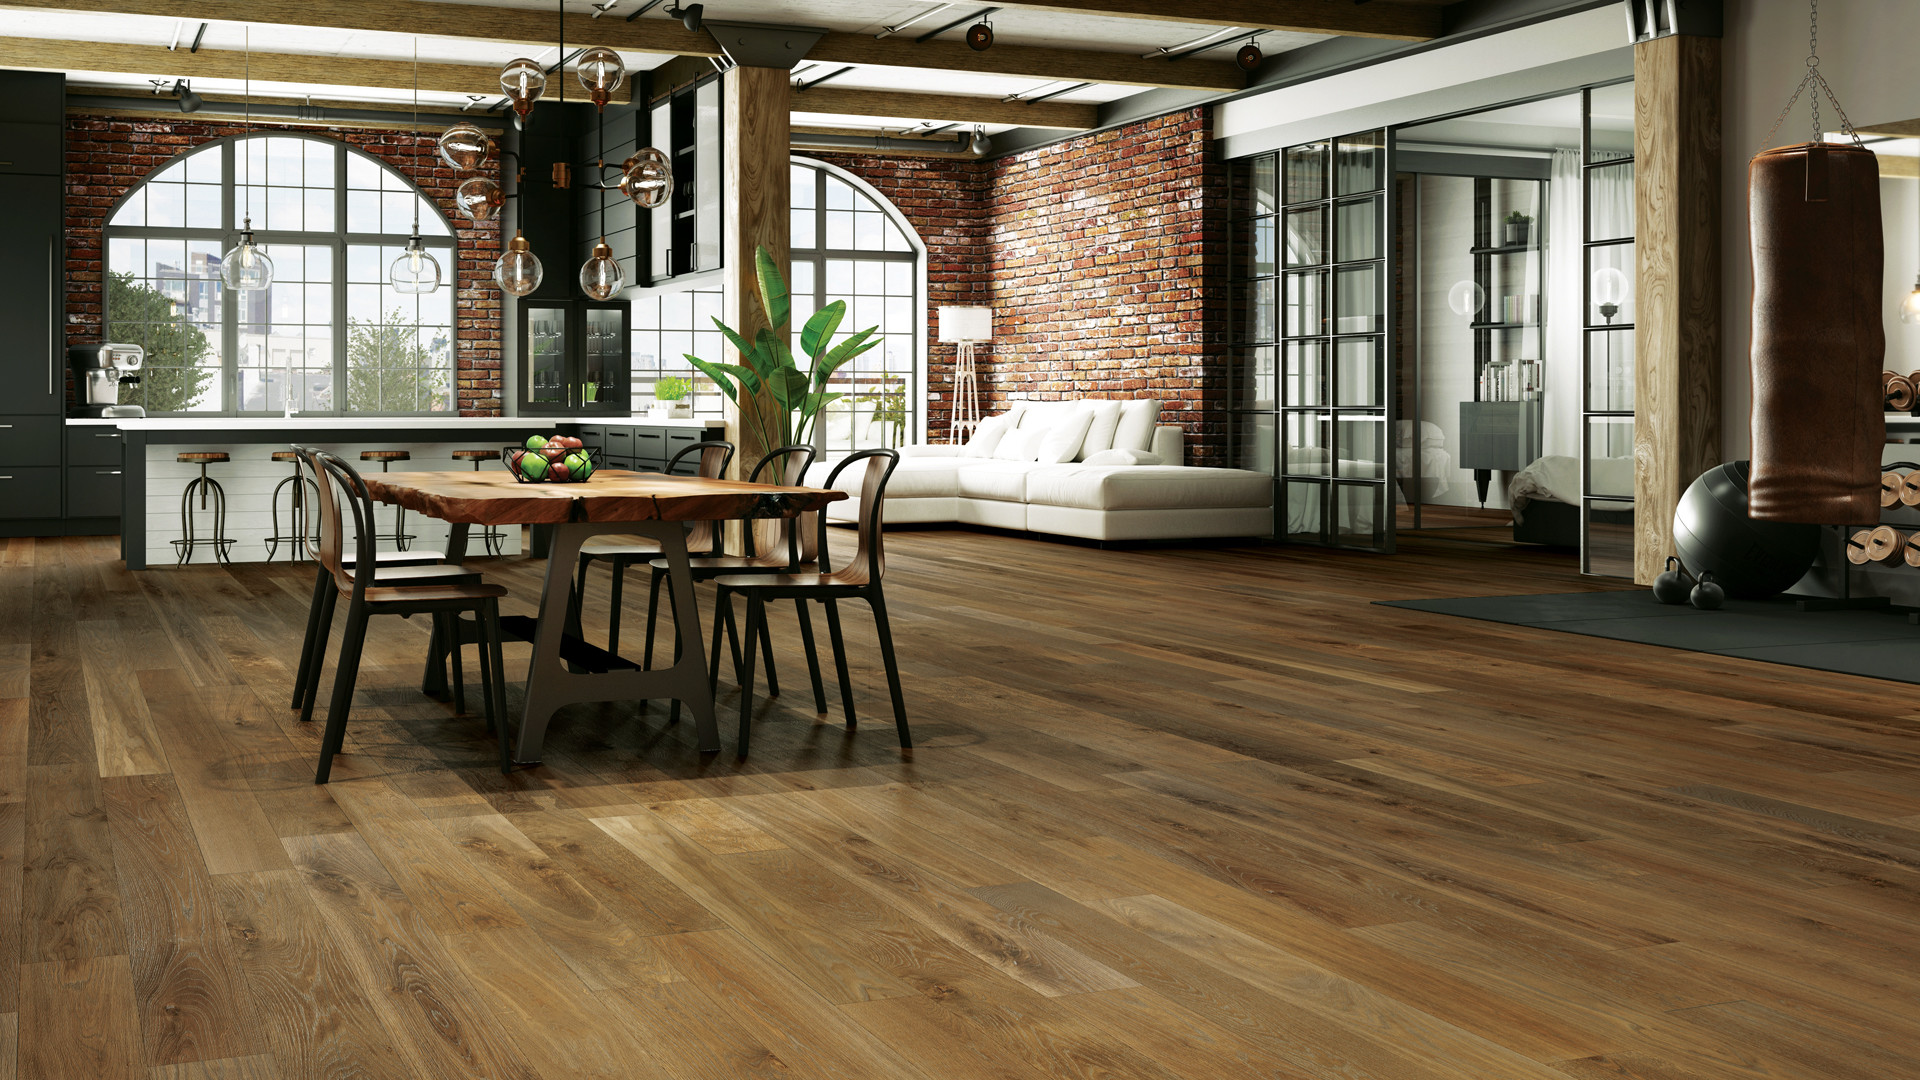 different color hardwood floors in adjacent rooms of 4 latest hardwood flooring trends of 2018 lauzon flooring pertaining to combined with a wire brushed texture and an ultra matte sheen these new 7a½ wide white oak hardwood floors will definitely add character to your home